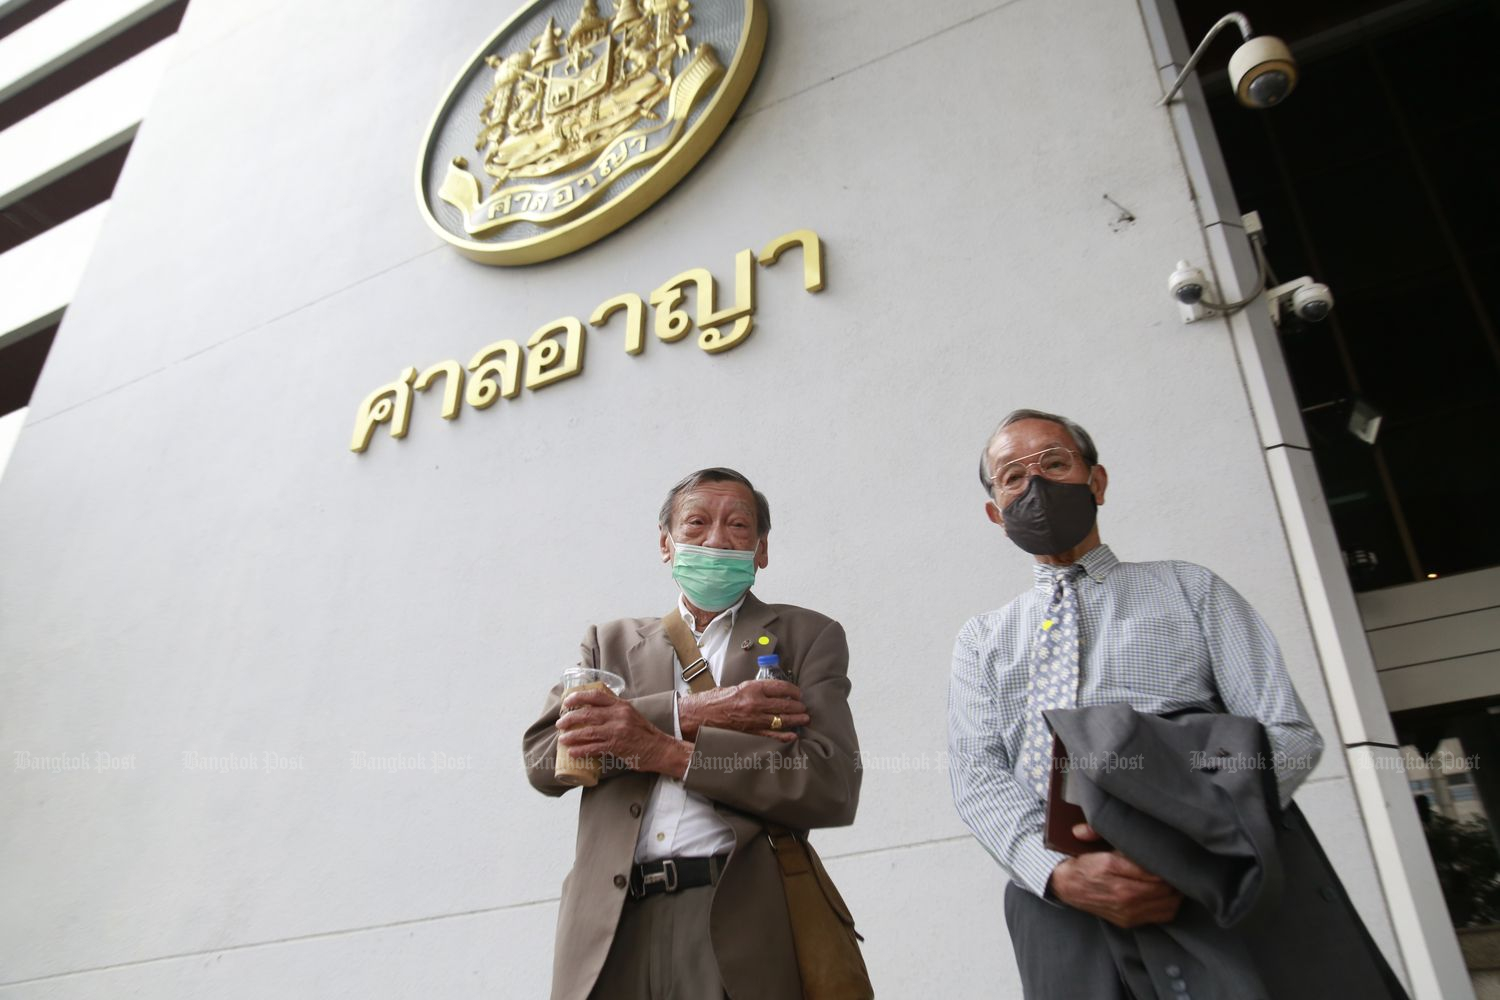 Panas Tassaneeyanon (left), a former rector of Thammasat University's Faculty of Law, and Charnvit Kasetsiri, an ex-dean of the university, arrive at the Criminal Court on Monday to offer themselves as guarantors for four Ratsadon co-leaders held on lese majeste charges since Feb 9. (Photo by Arnun Chonmahatrakool)